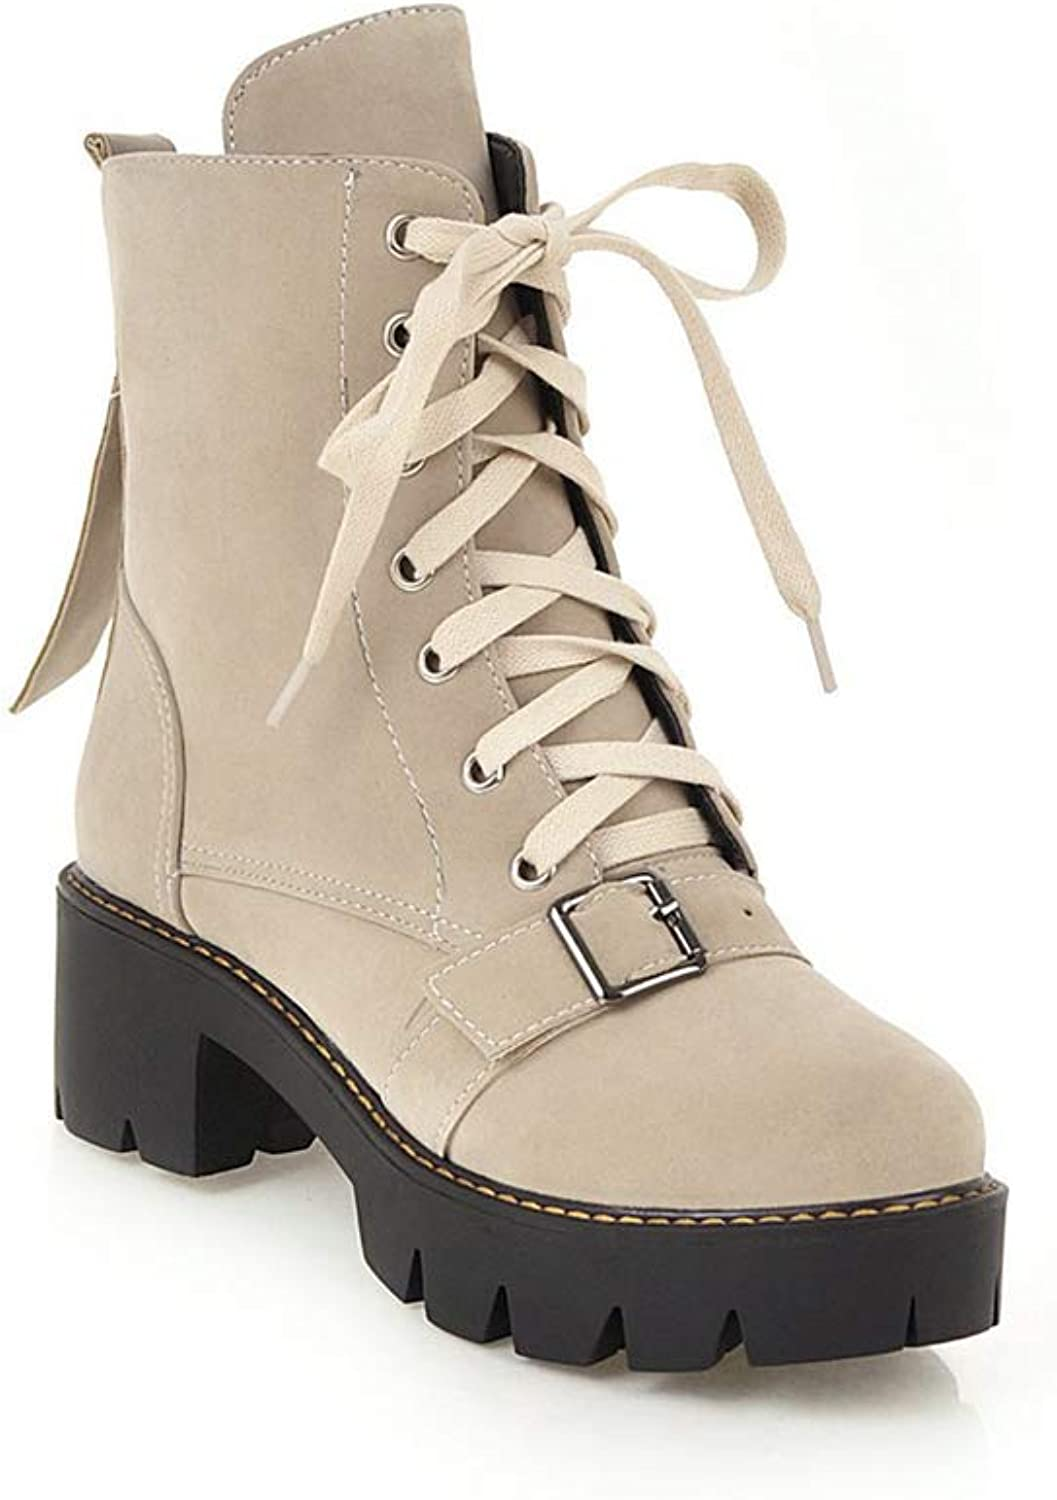 Btrada Women's Lace-up Martin Boots Round Head Square Heel Ankle Boots Wedges Non-Slip Combat Booties